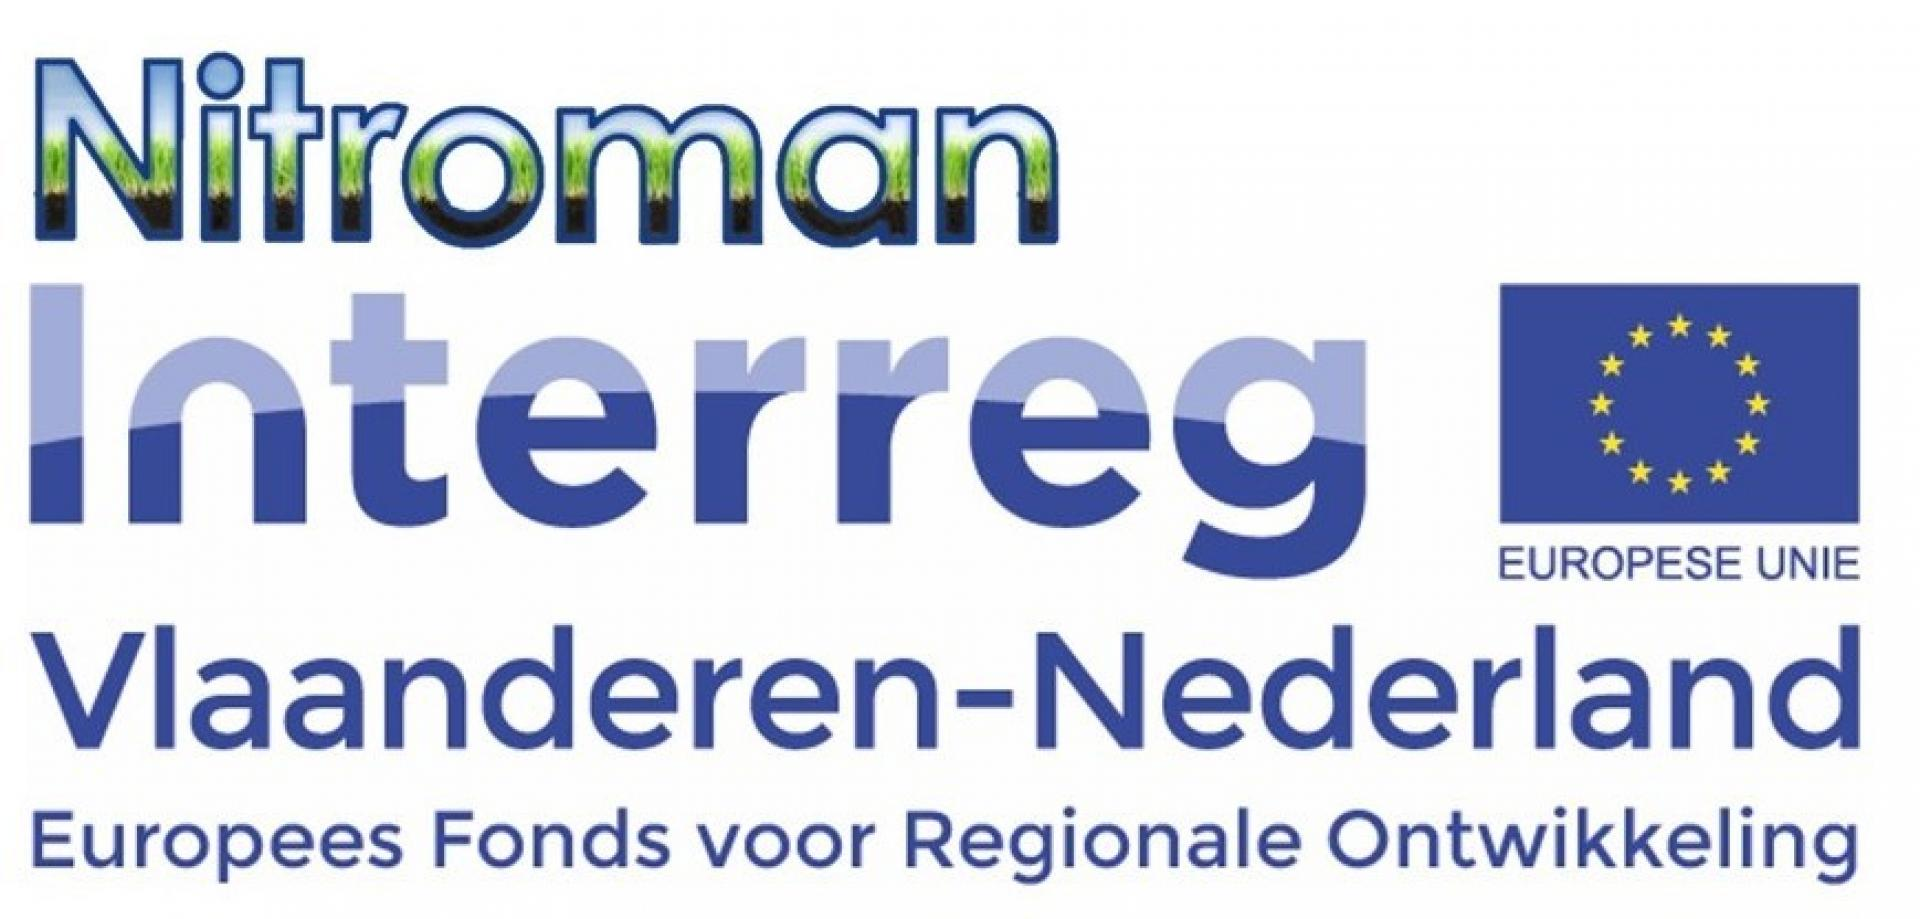 Kick-off meeting binnen project Nitroman op 10 september